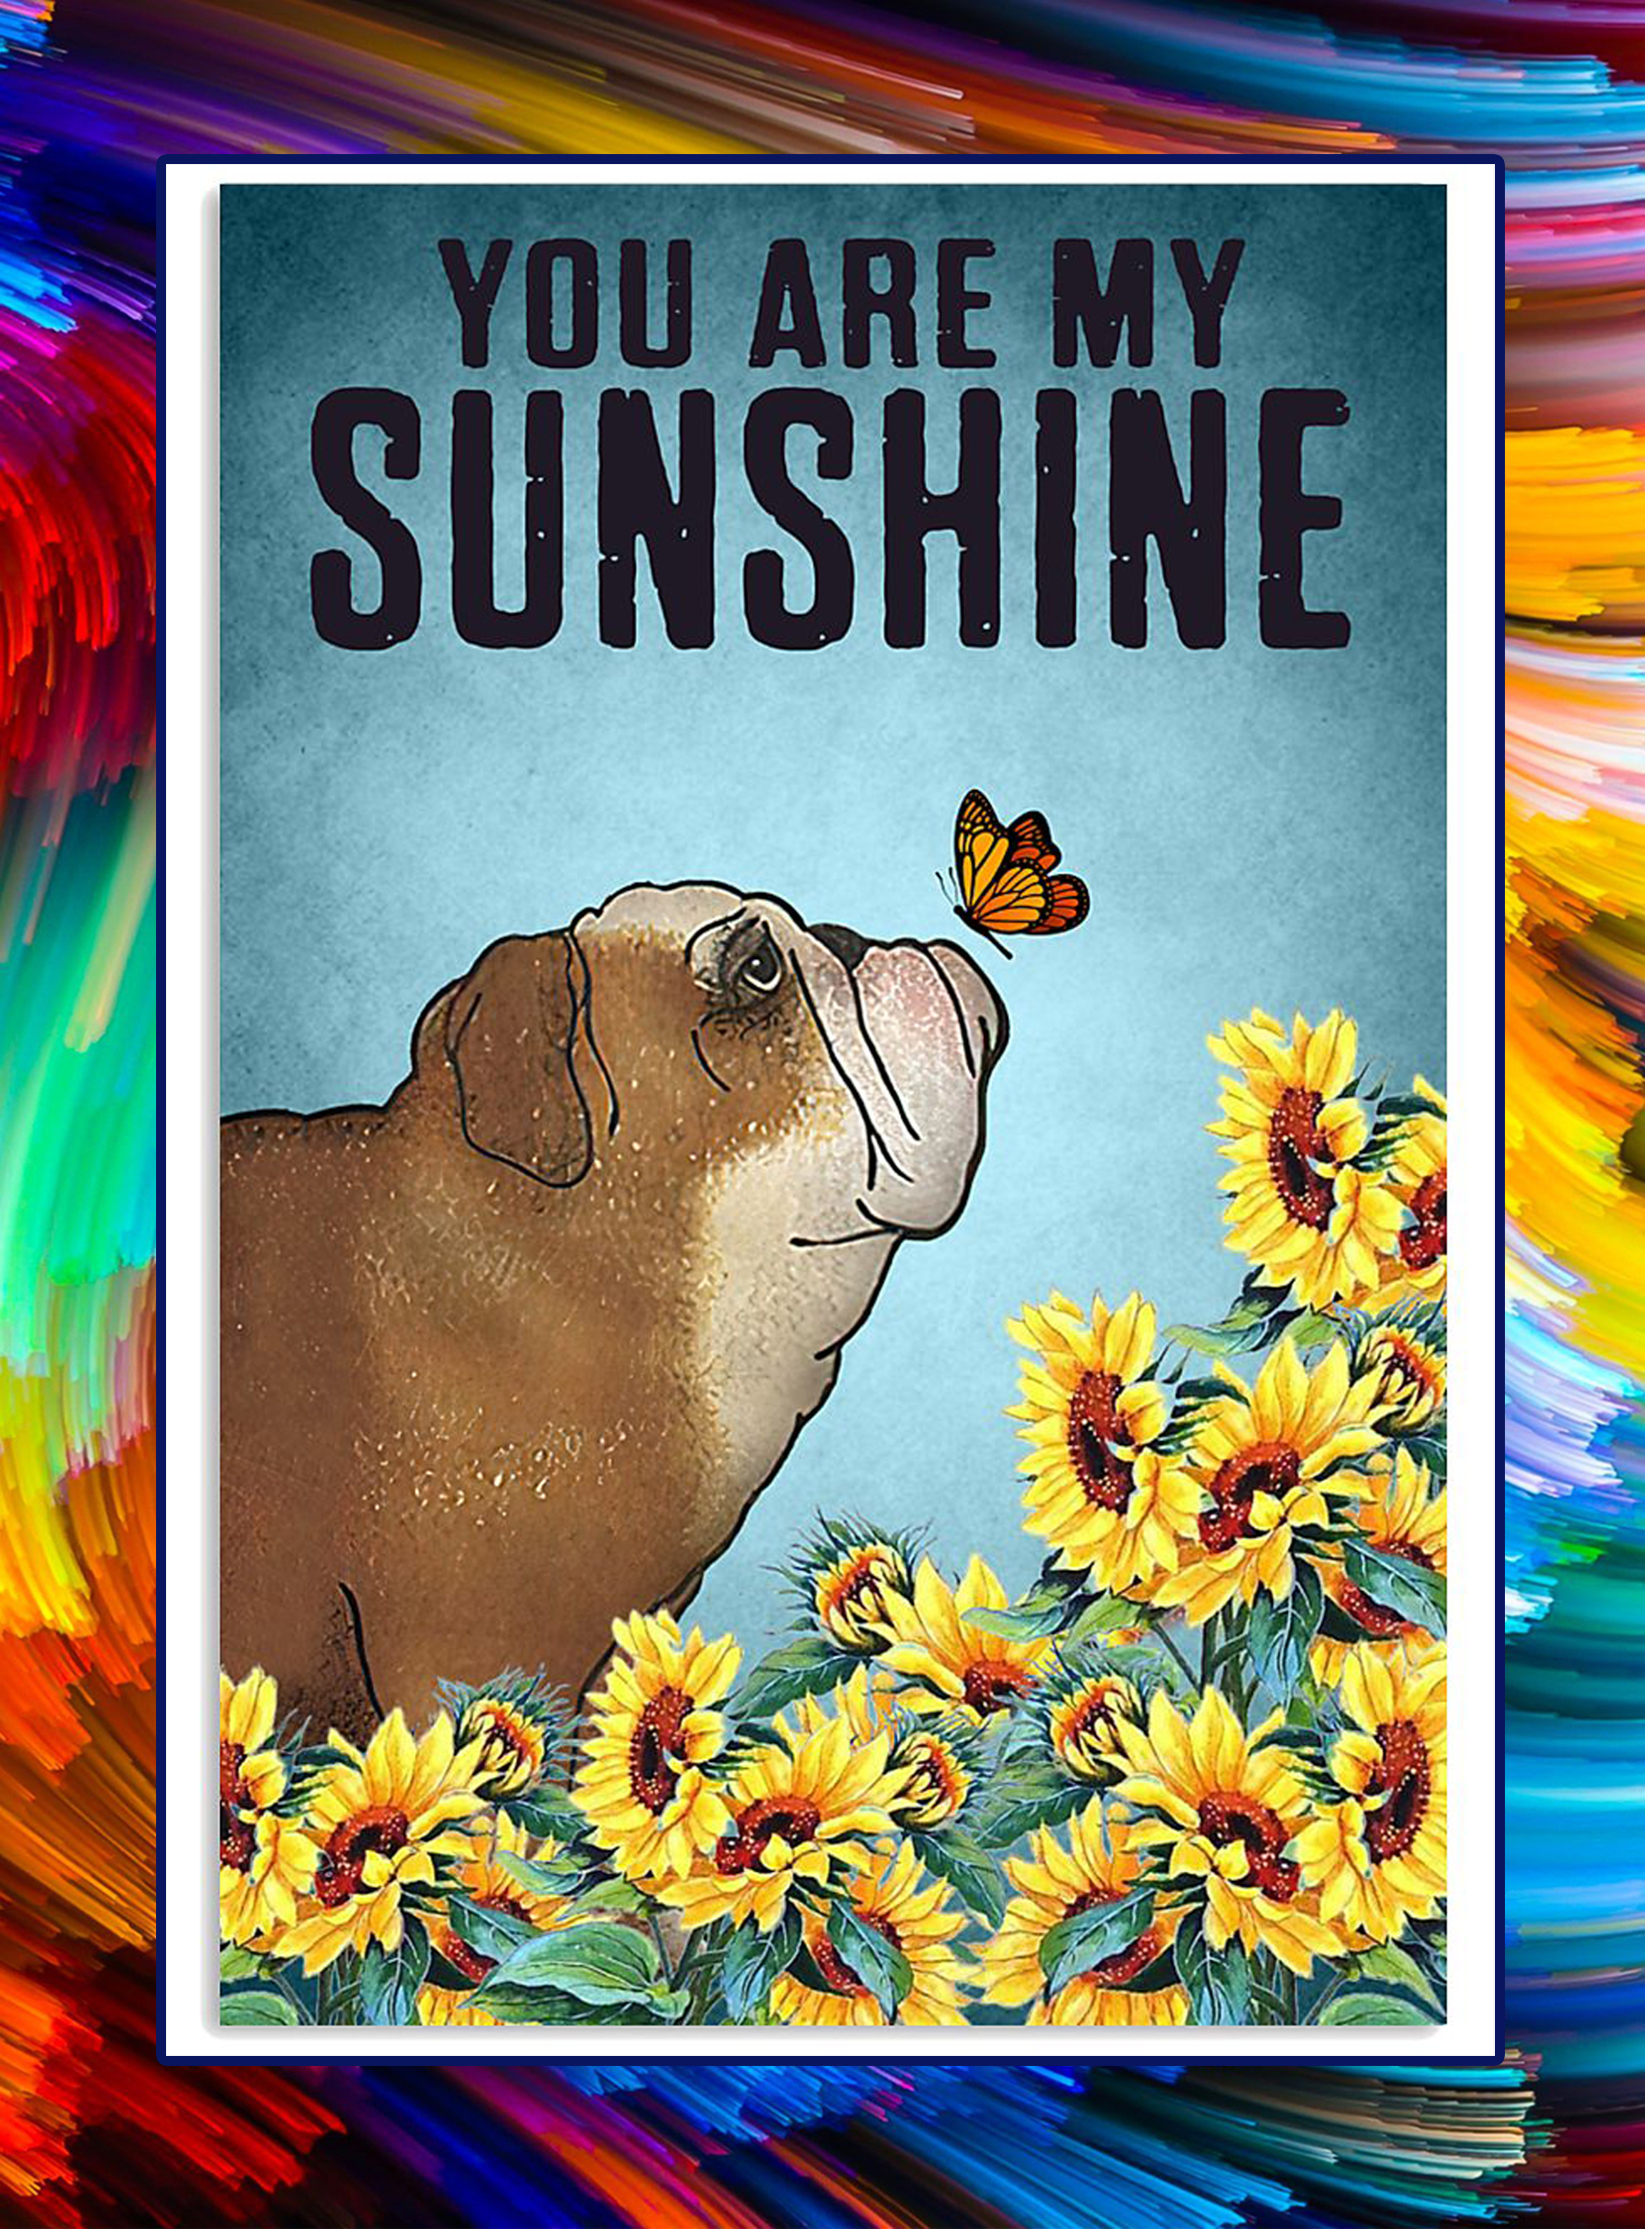 Bulldog puppies you are my sunshine poster - A3